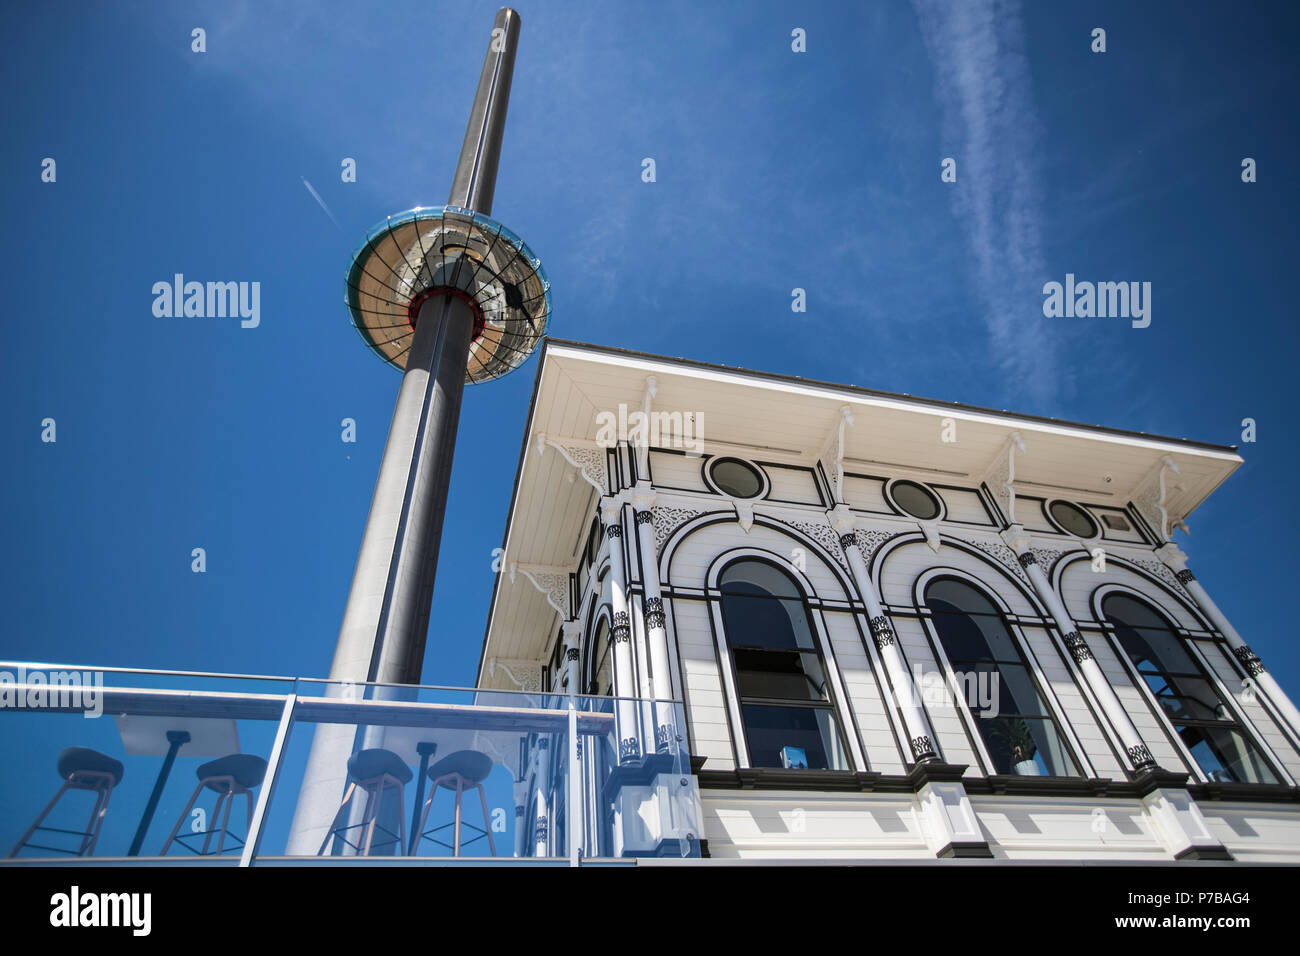 Brighton i360 lift - Stock Image